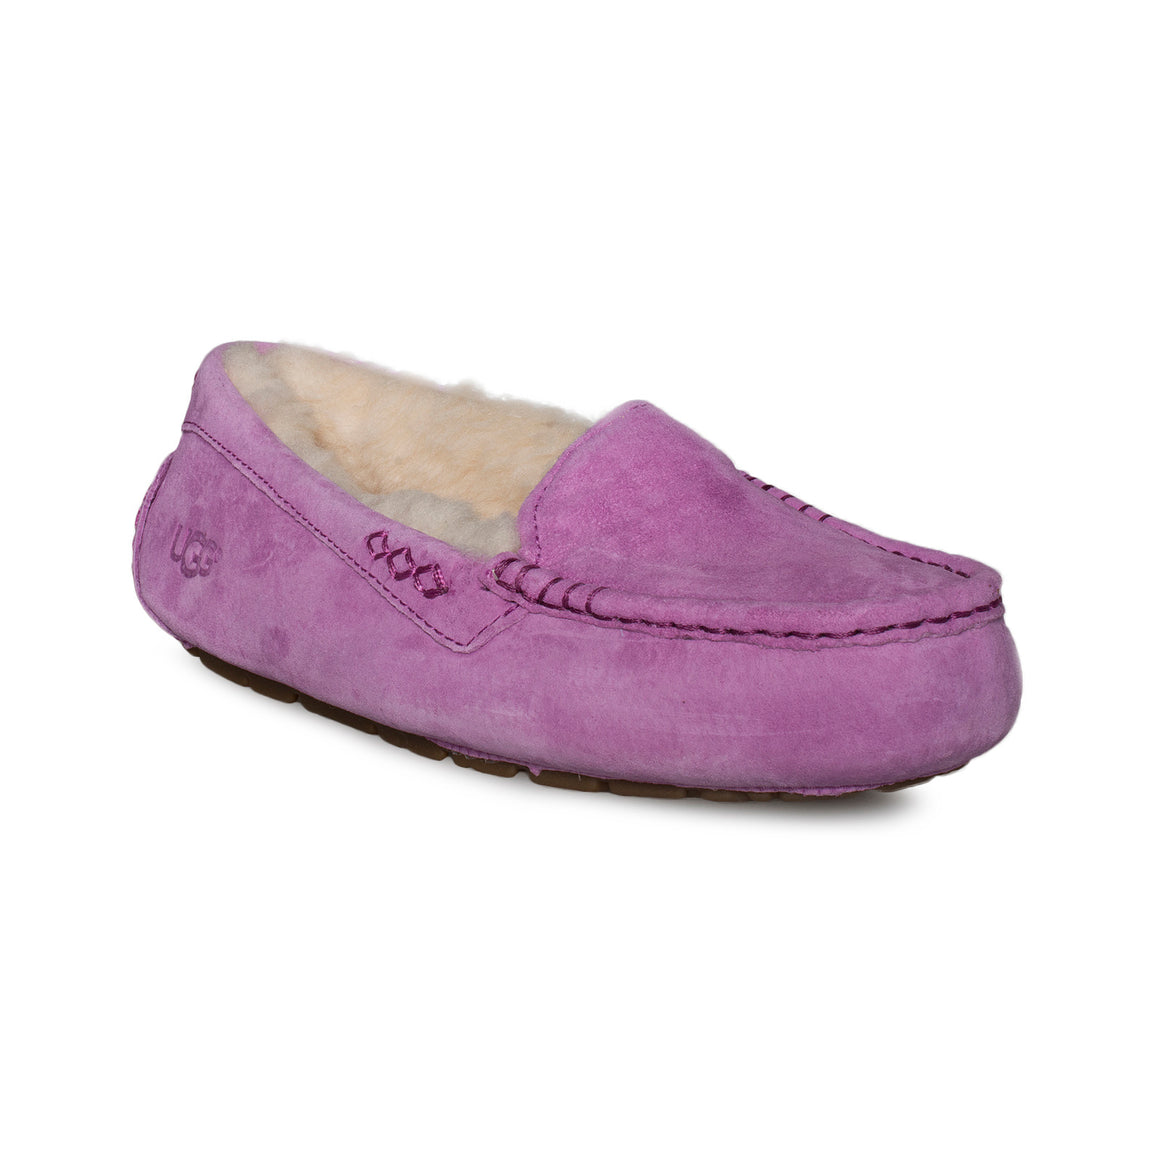 UGG Ansley Bodacious Slippers - Women's